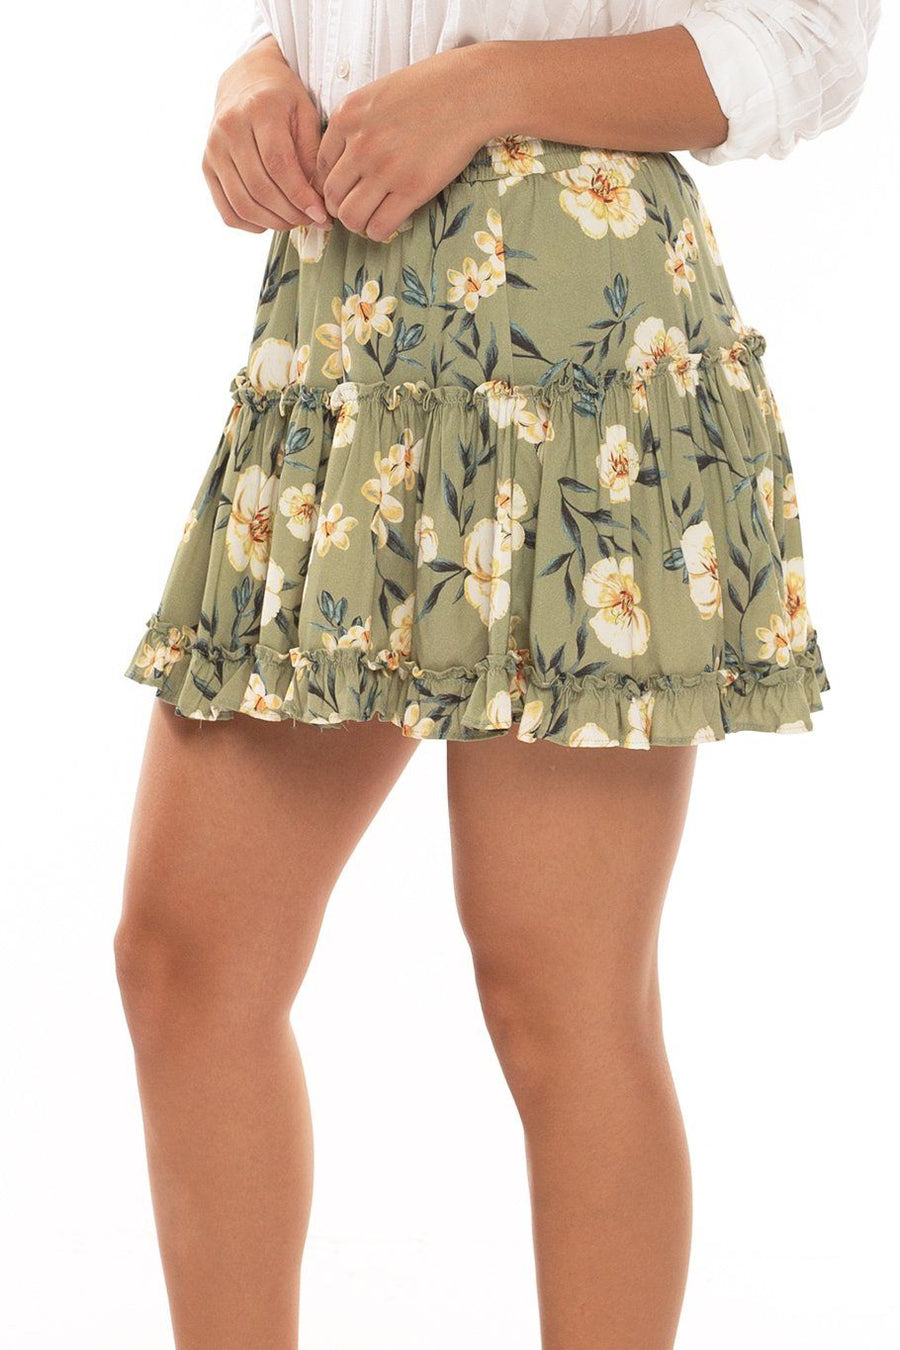 Shoreside Skort - Green Floral - Shore